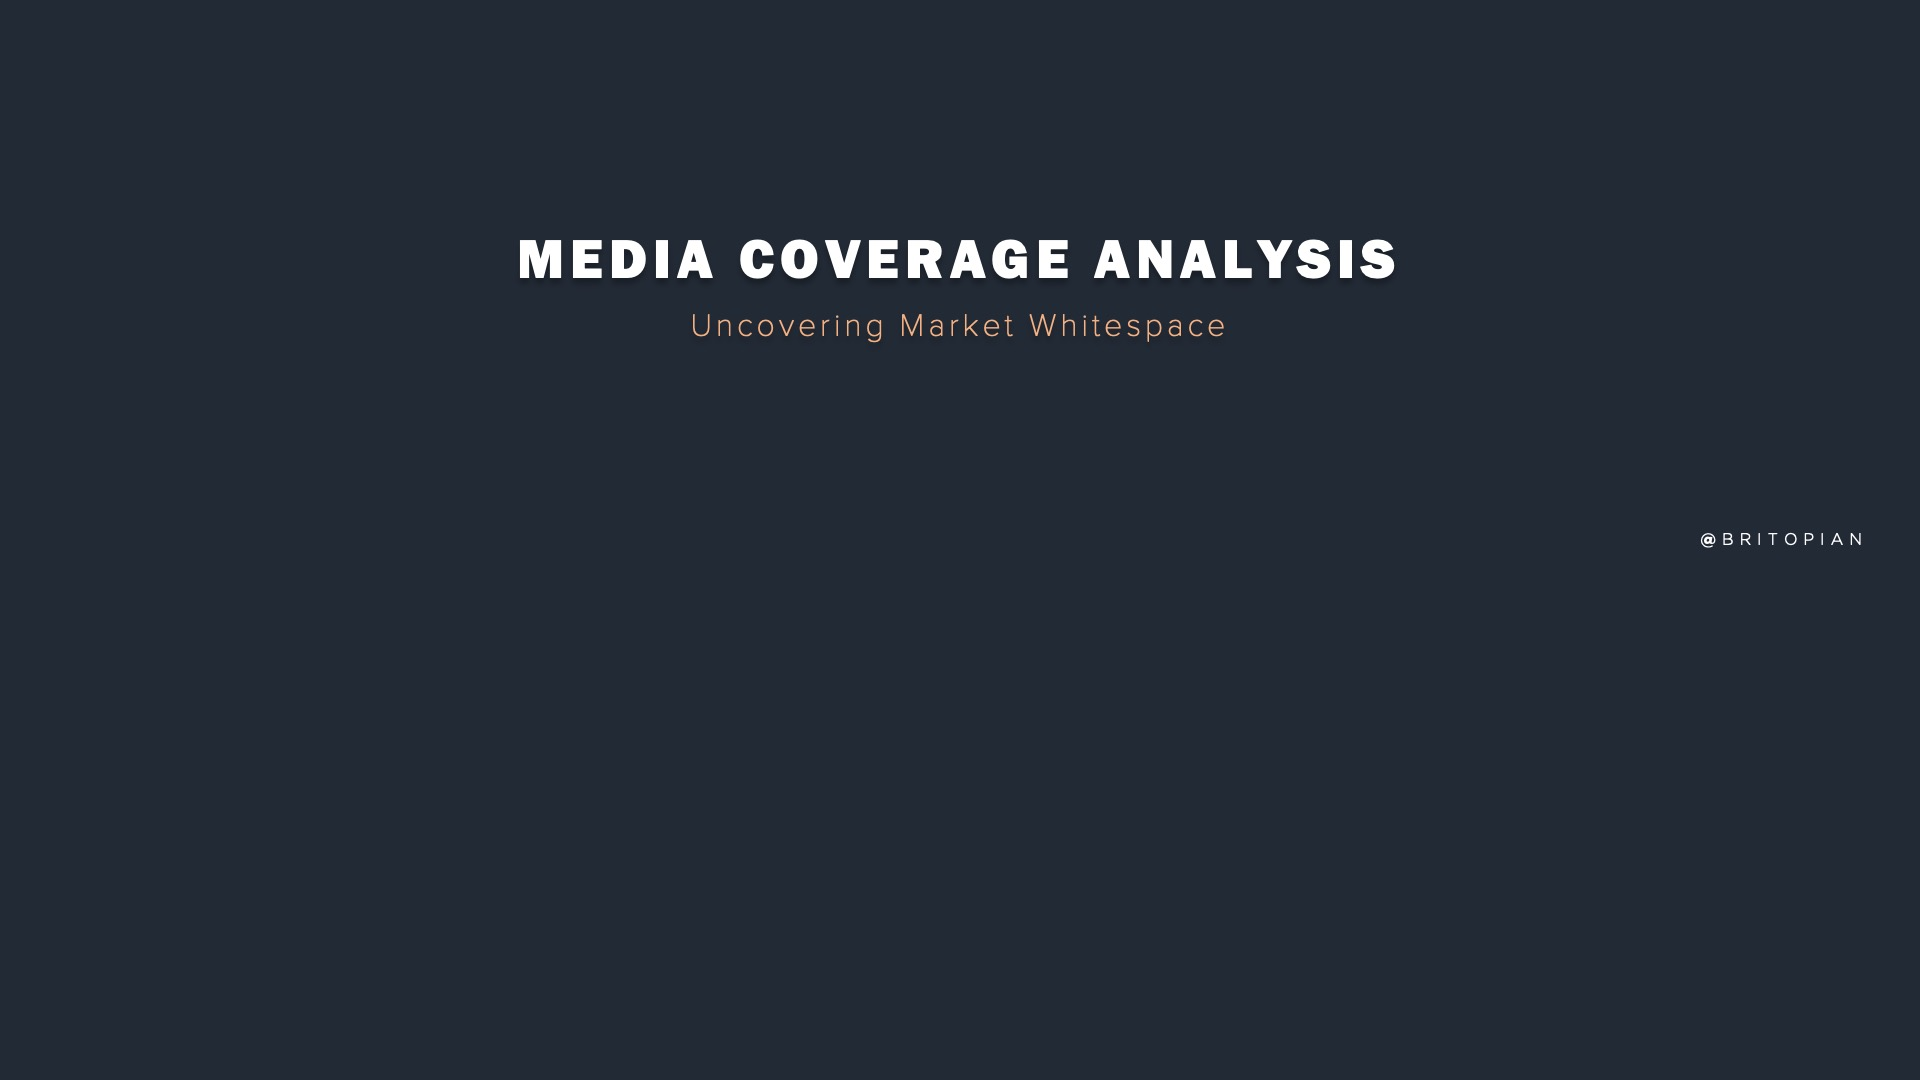 Media Coverage Analysis: Uncover Market Whitespace With Data